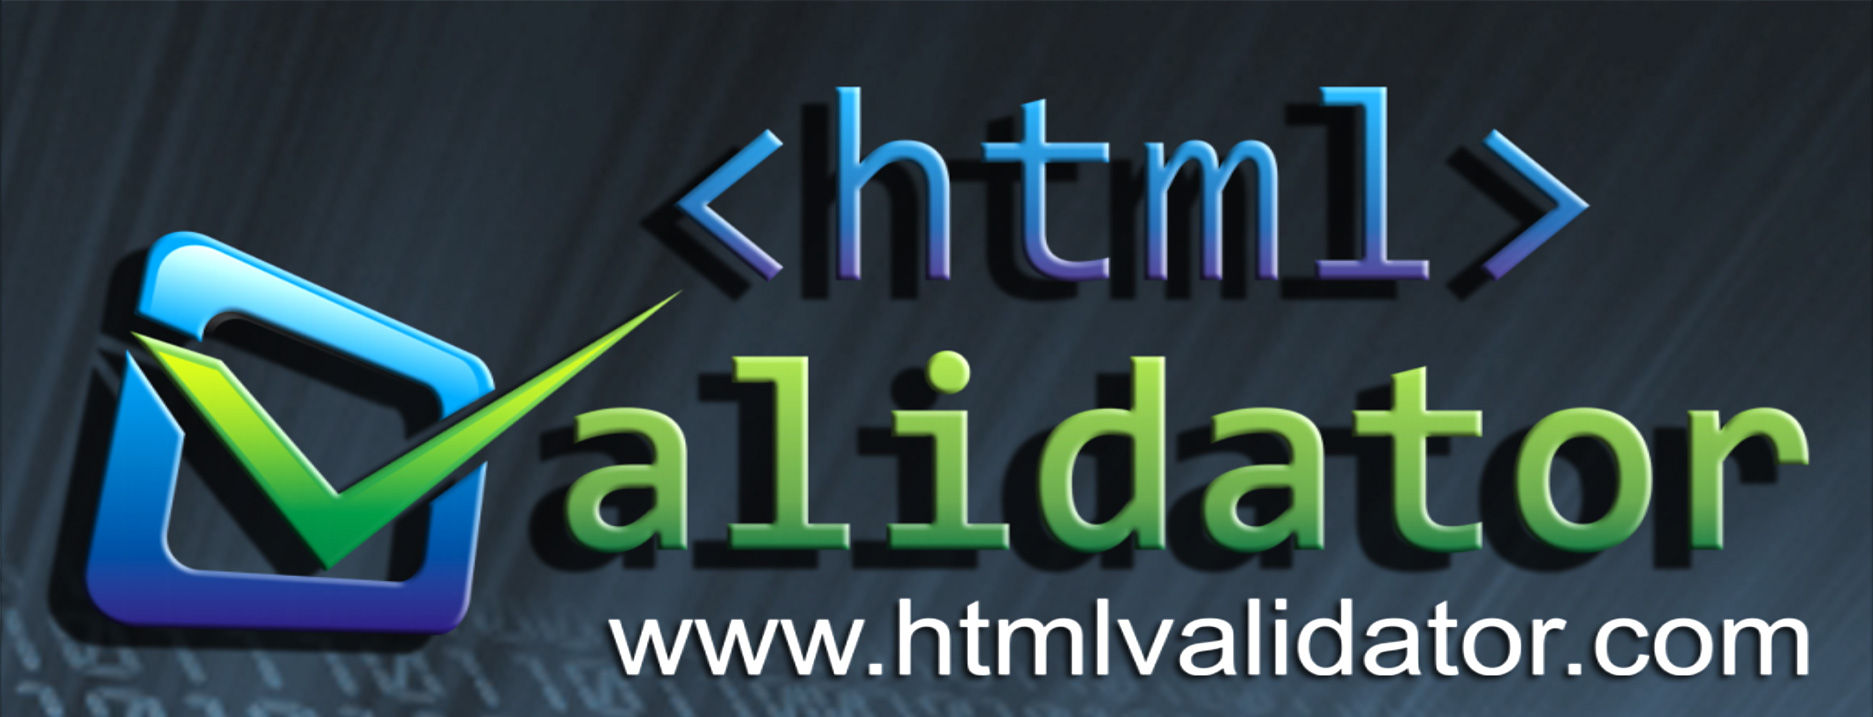 About CSS HTML Validator Homepage